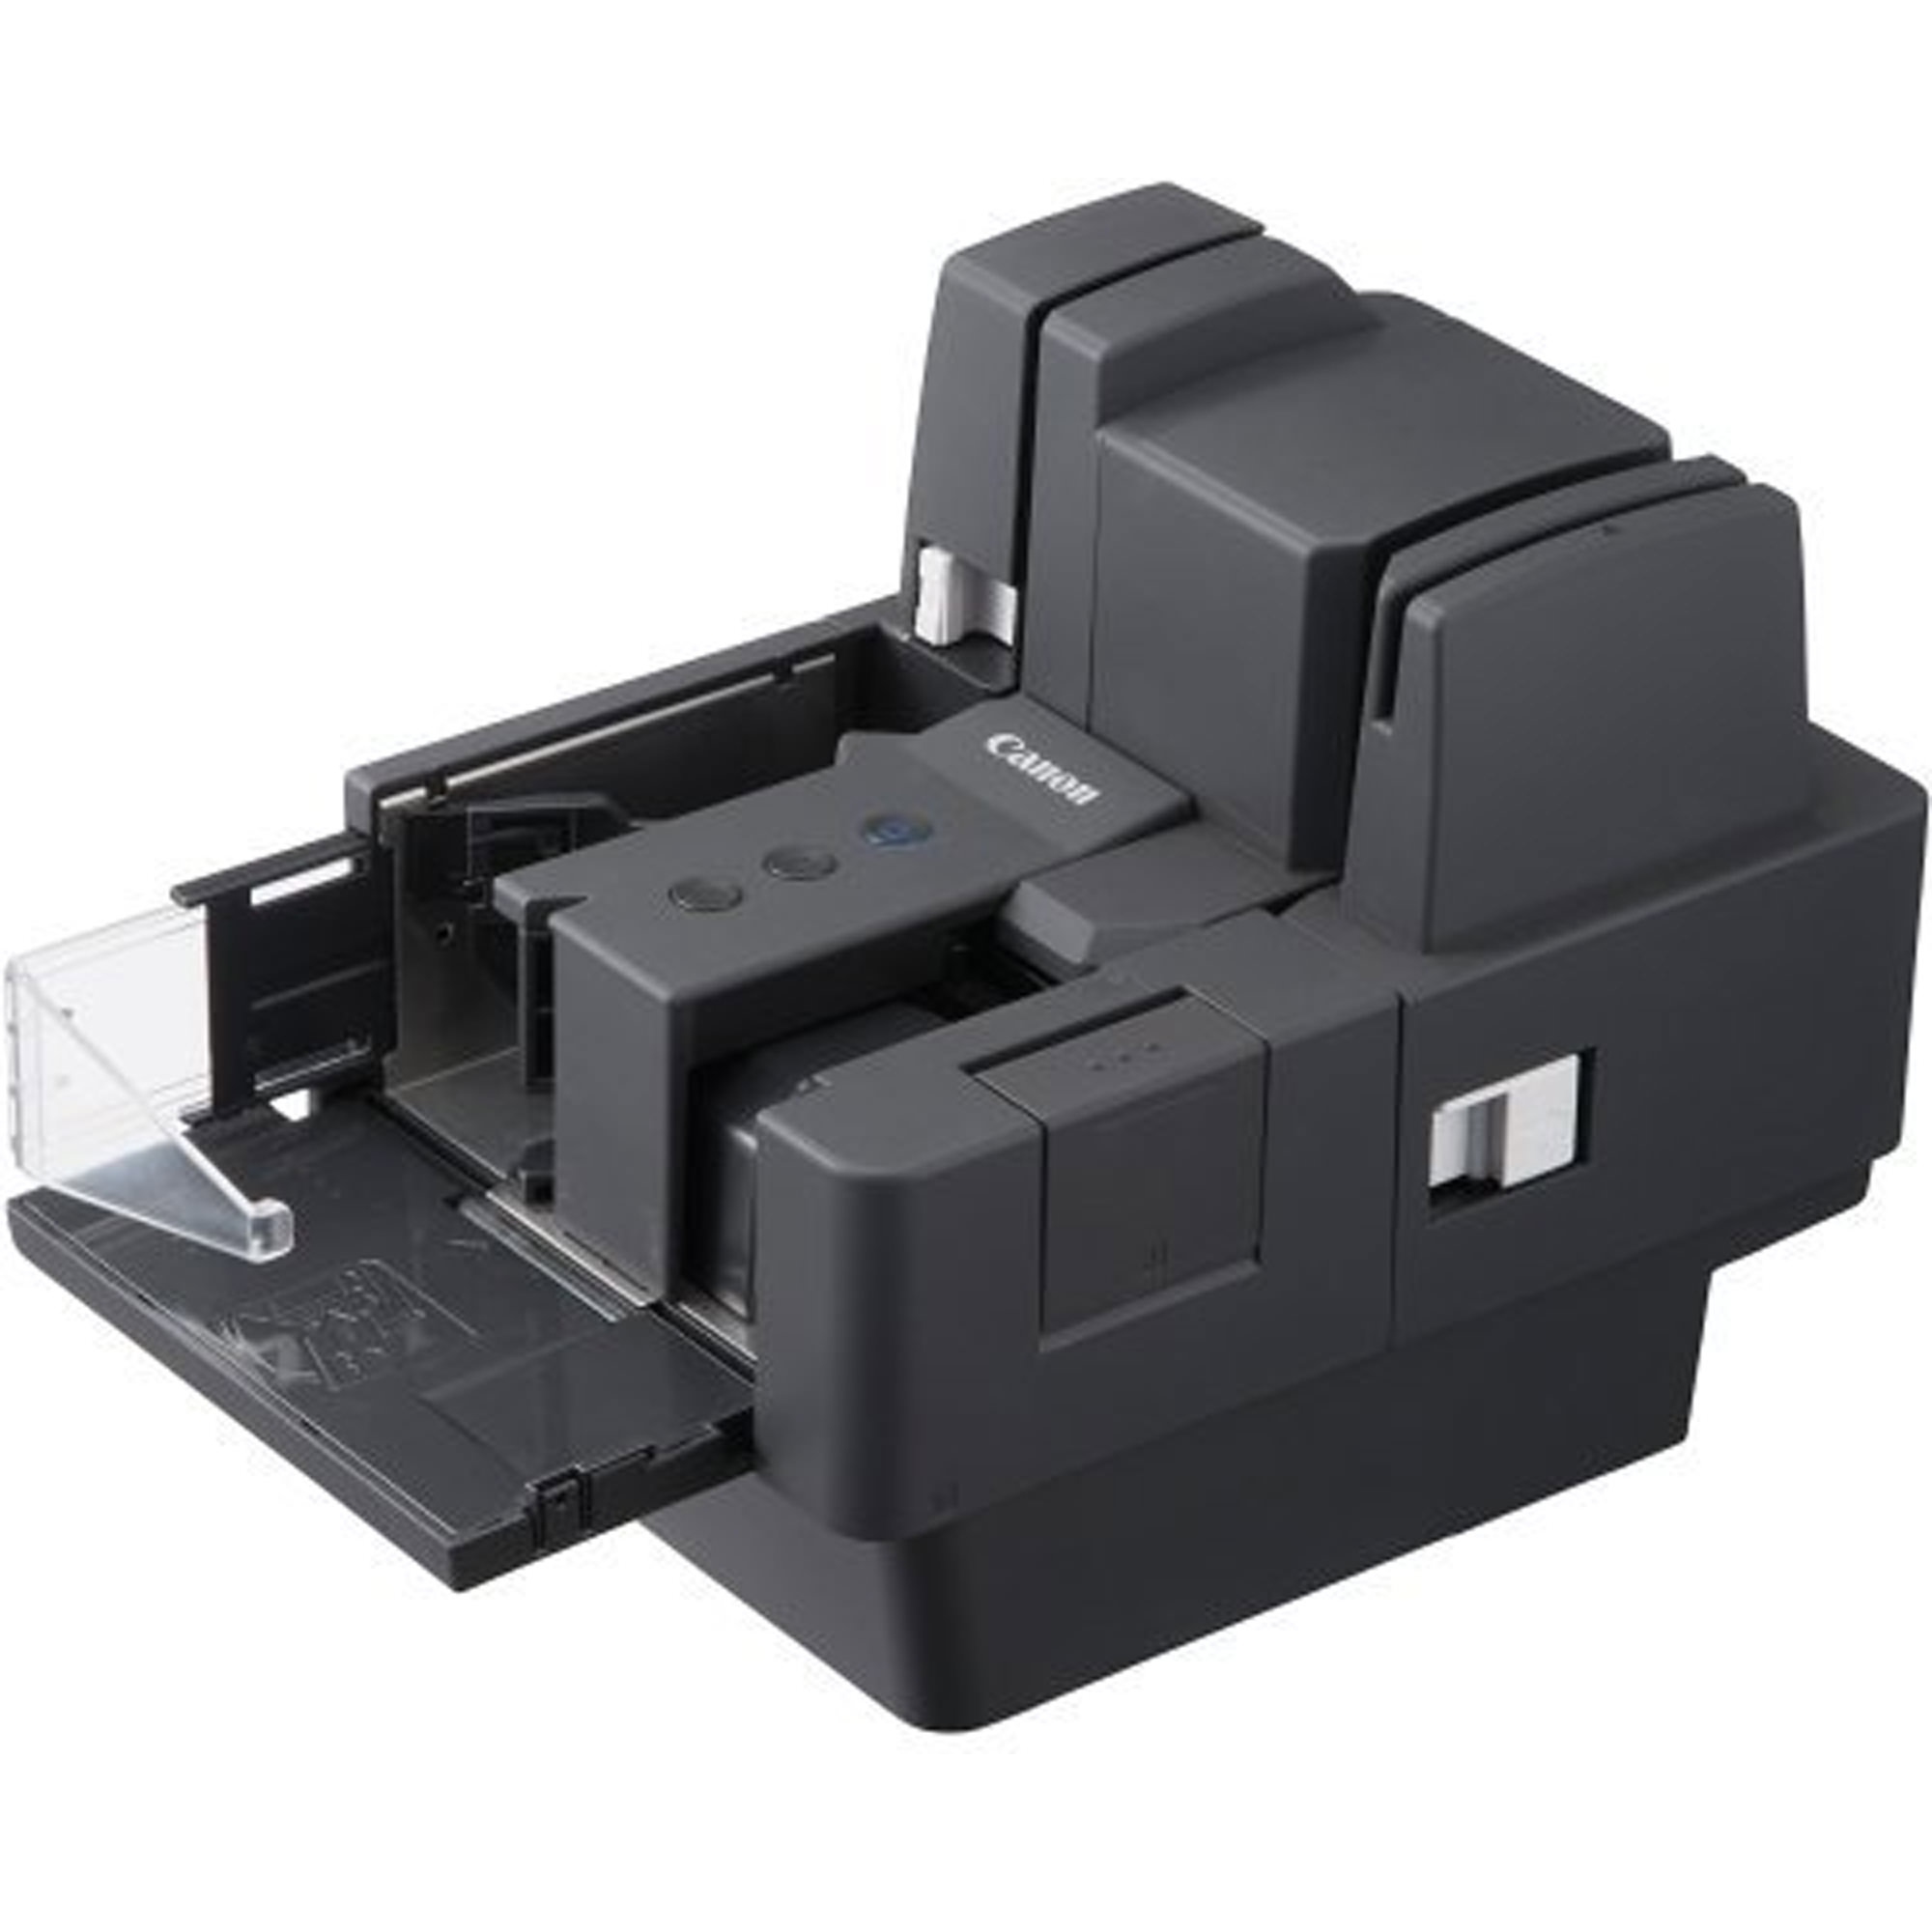 Canon Imageformula Cr-150 Check Transport - Check Scanner - 150-item Automatic Document Feeder